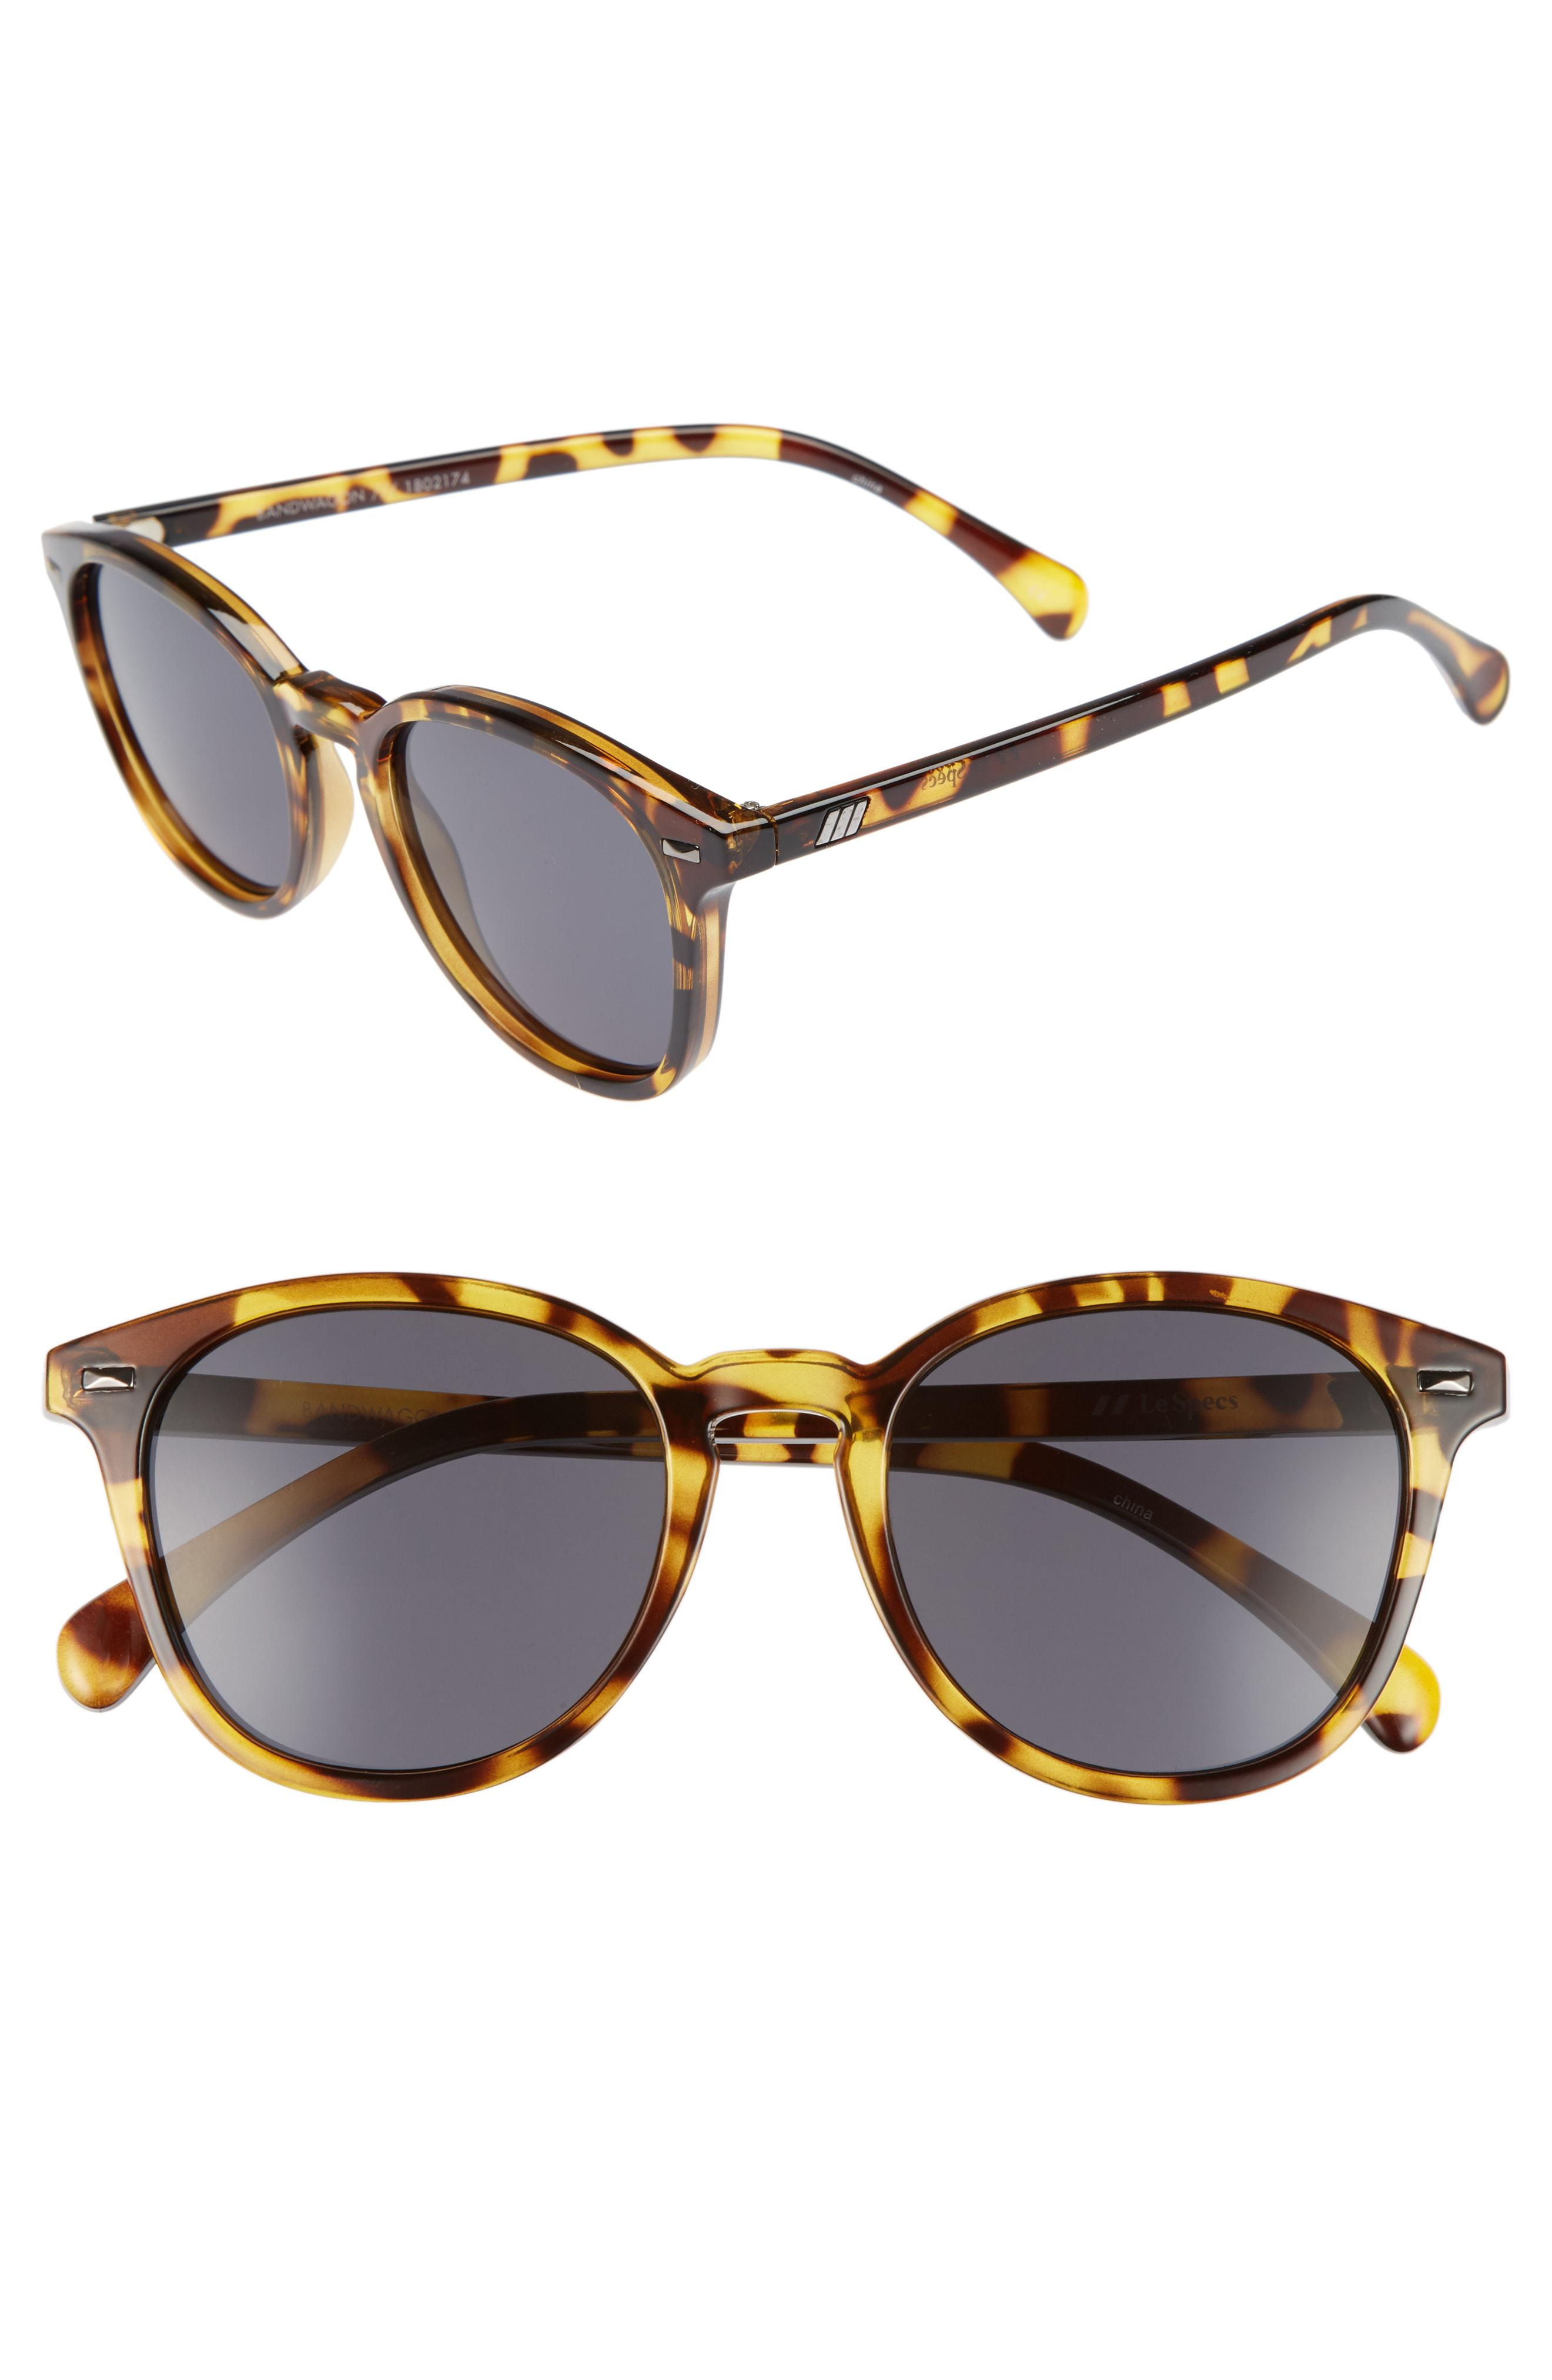 124533b371 Lyst - Le Specs Bandwagon 50mm Sunglasses - Syrup Tortoise in Brown